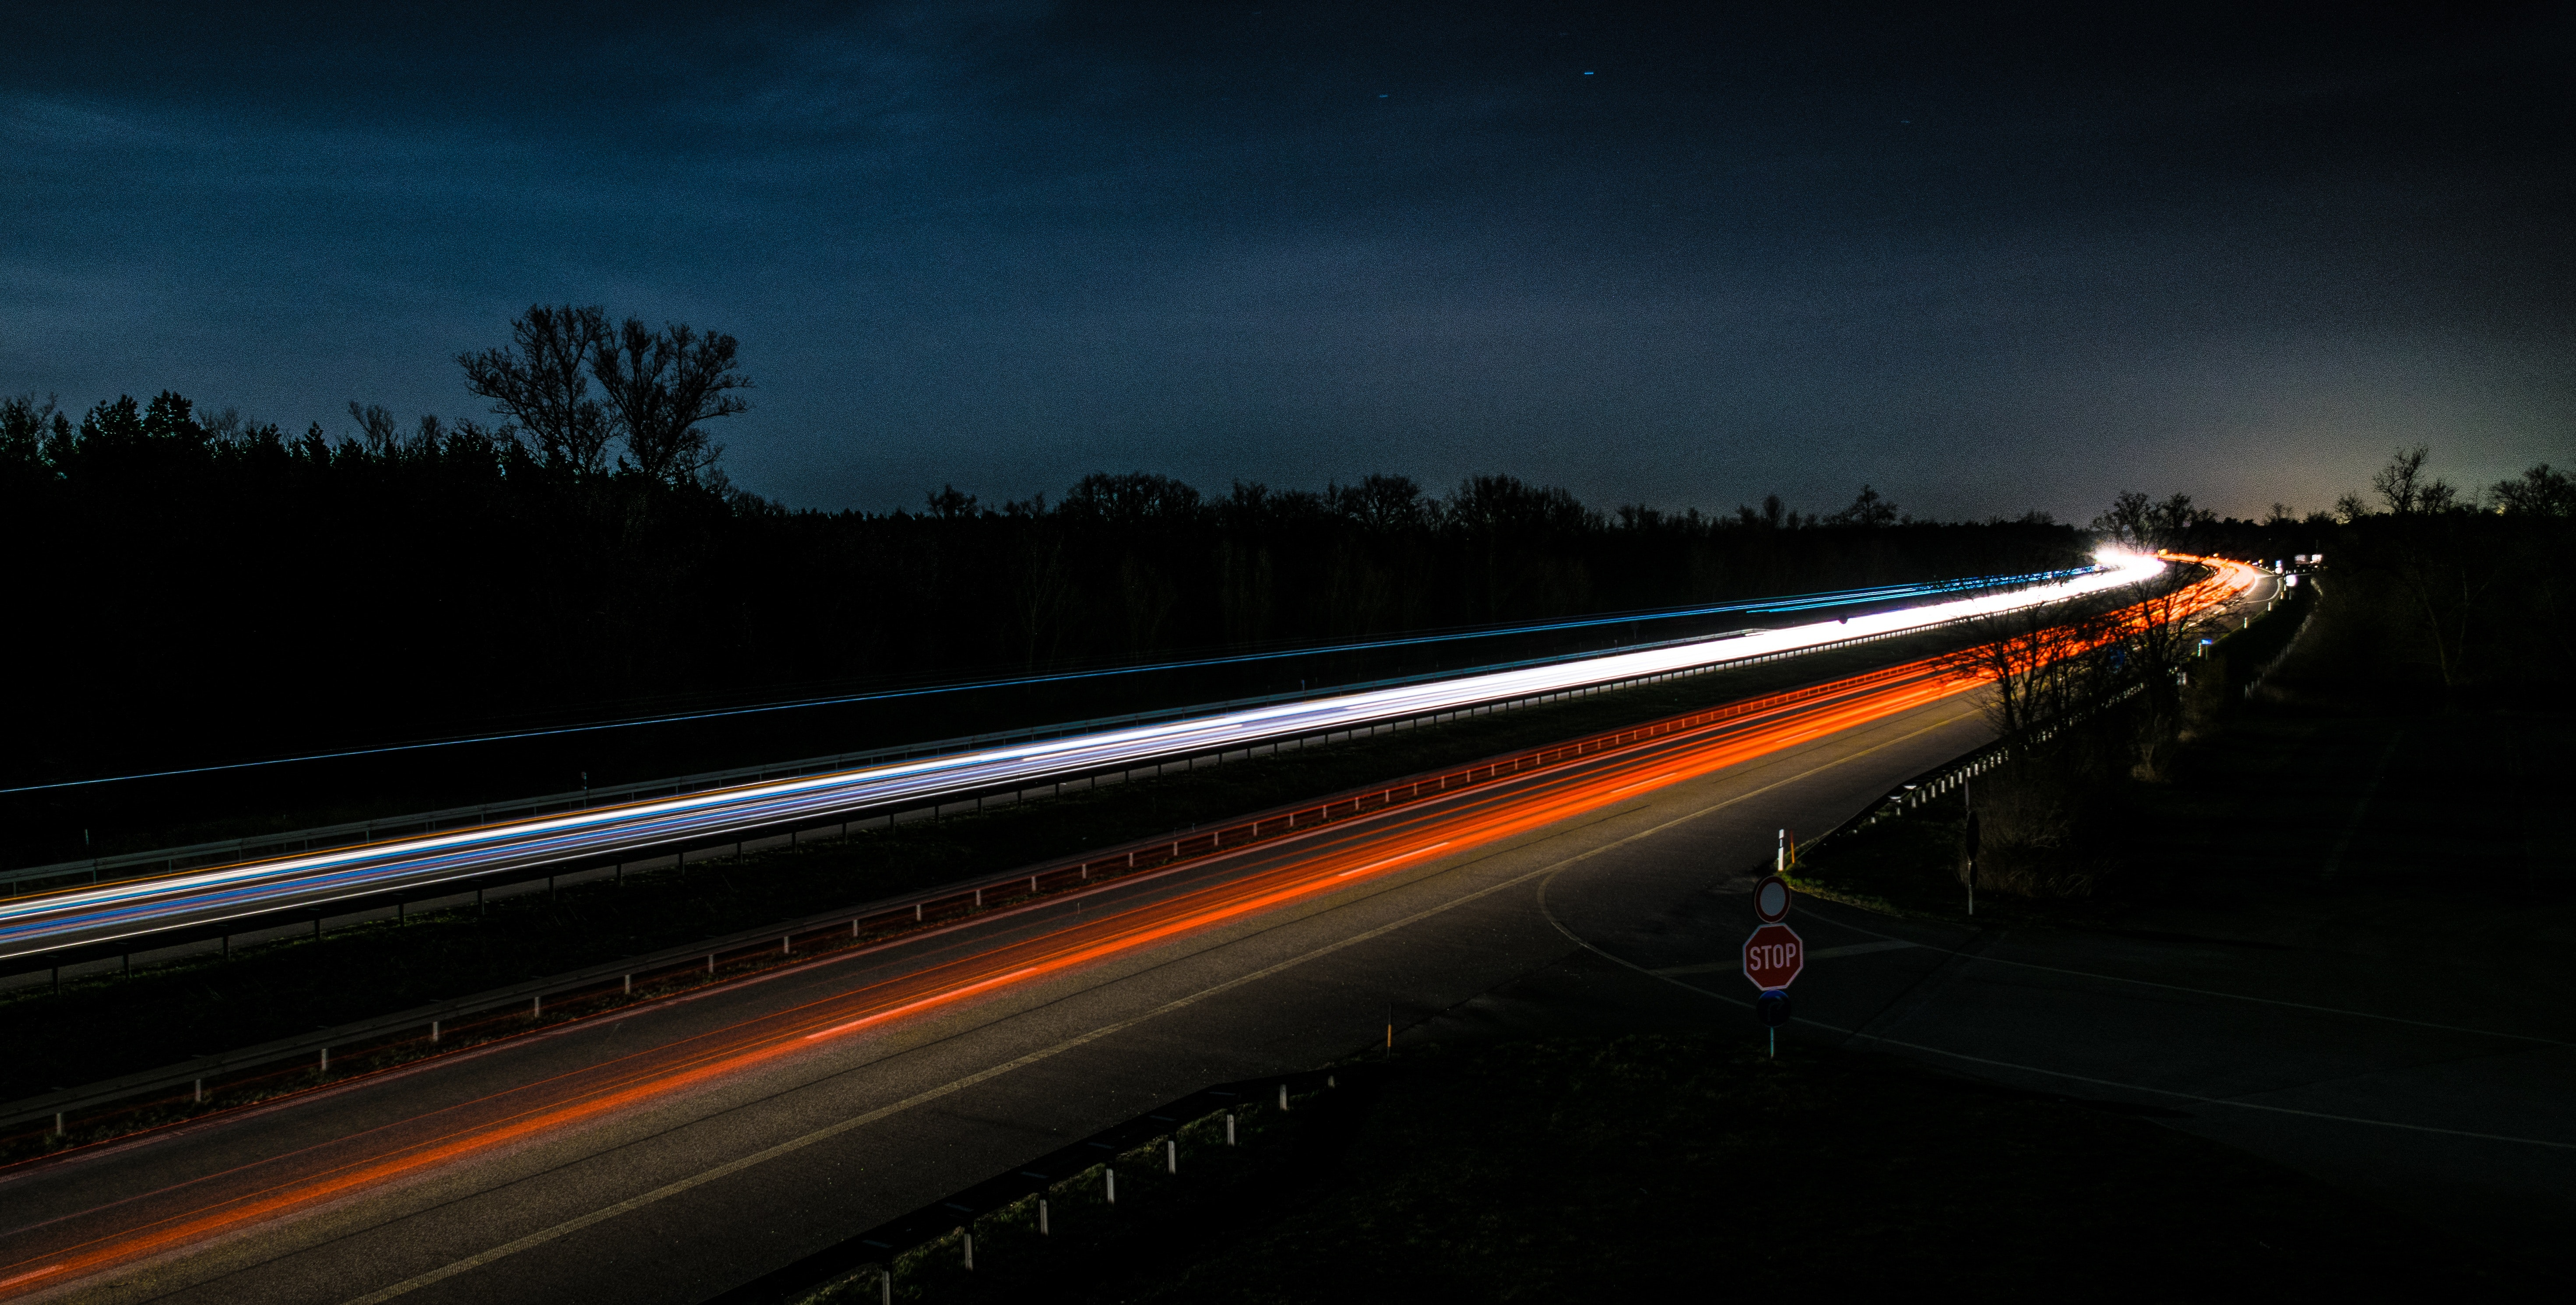 Light Trails On Highway At Night 183 Free Stock Photo